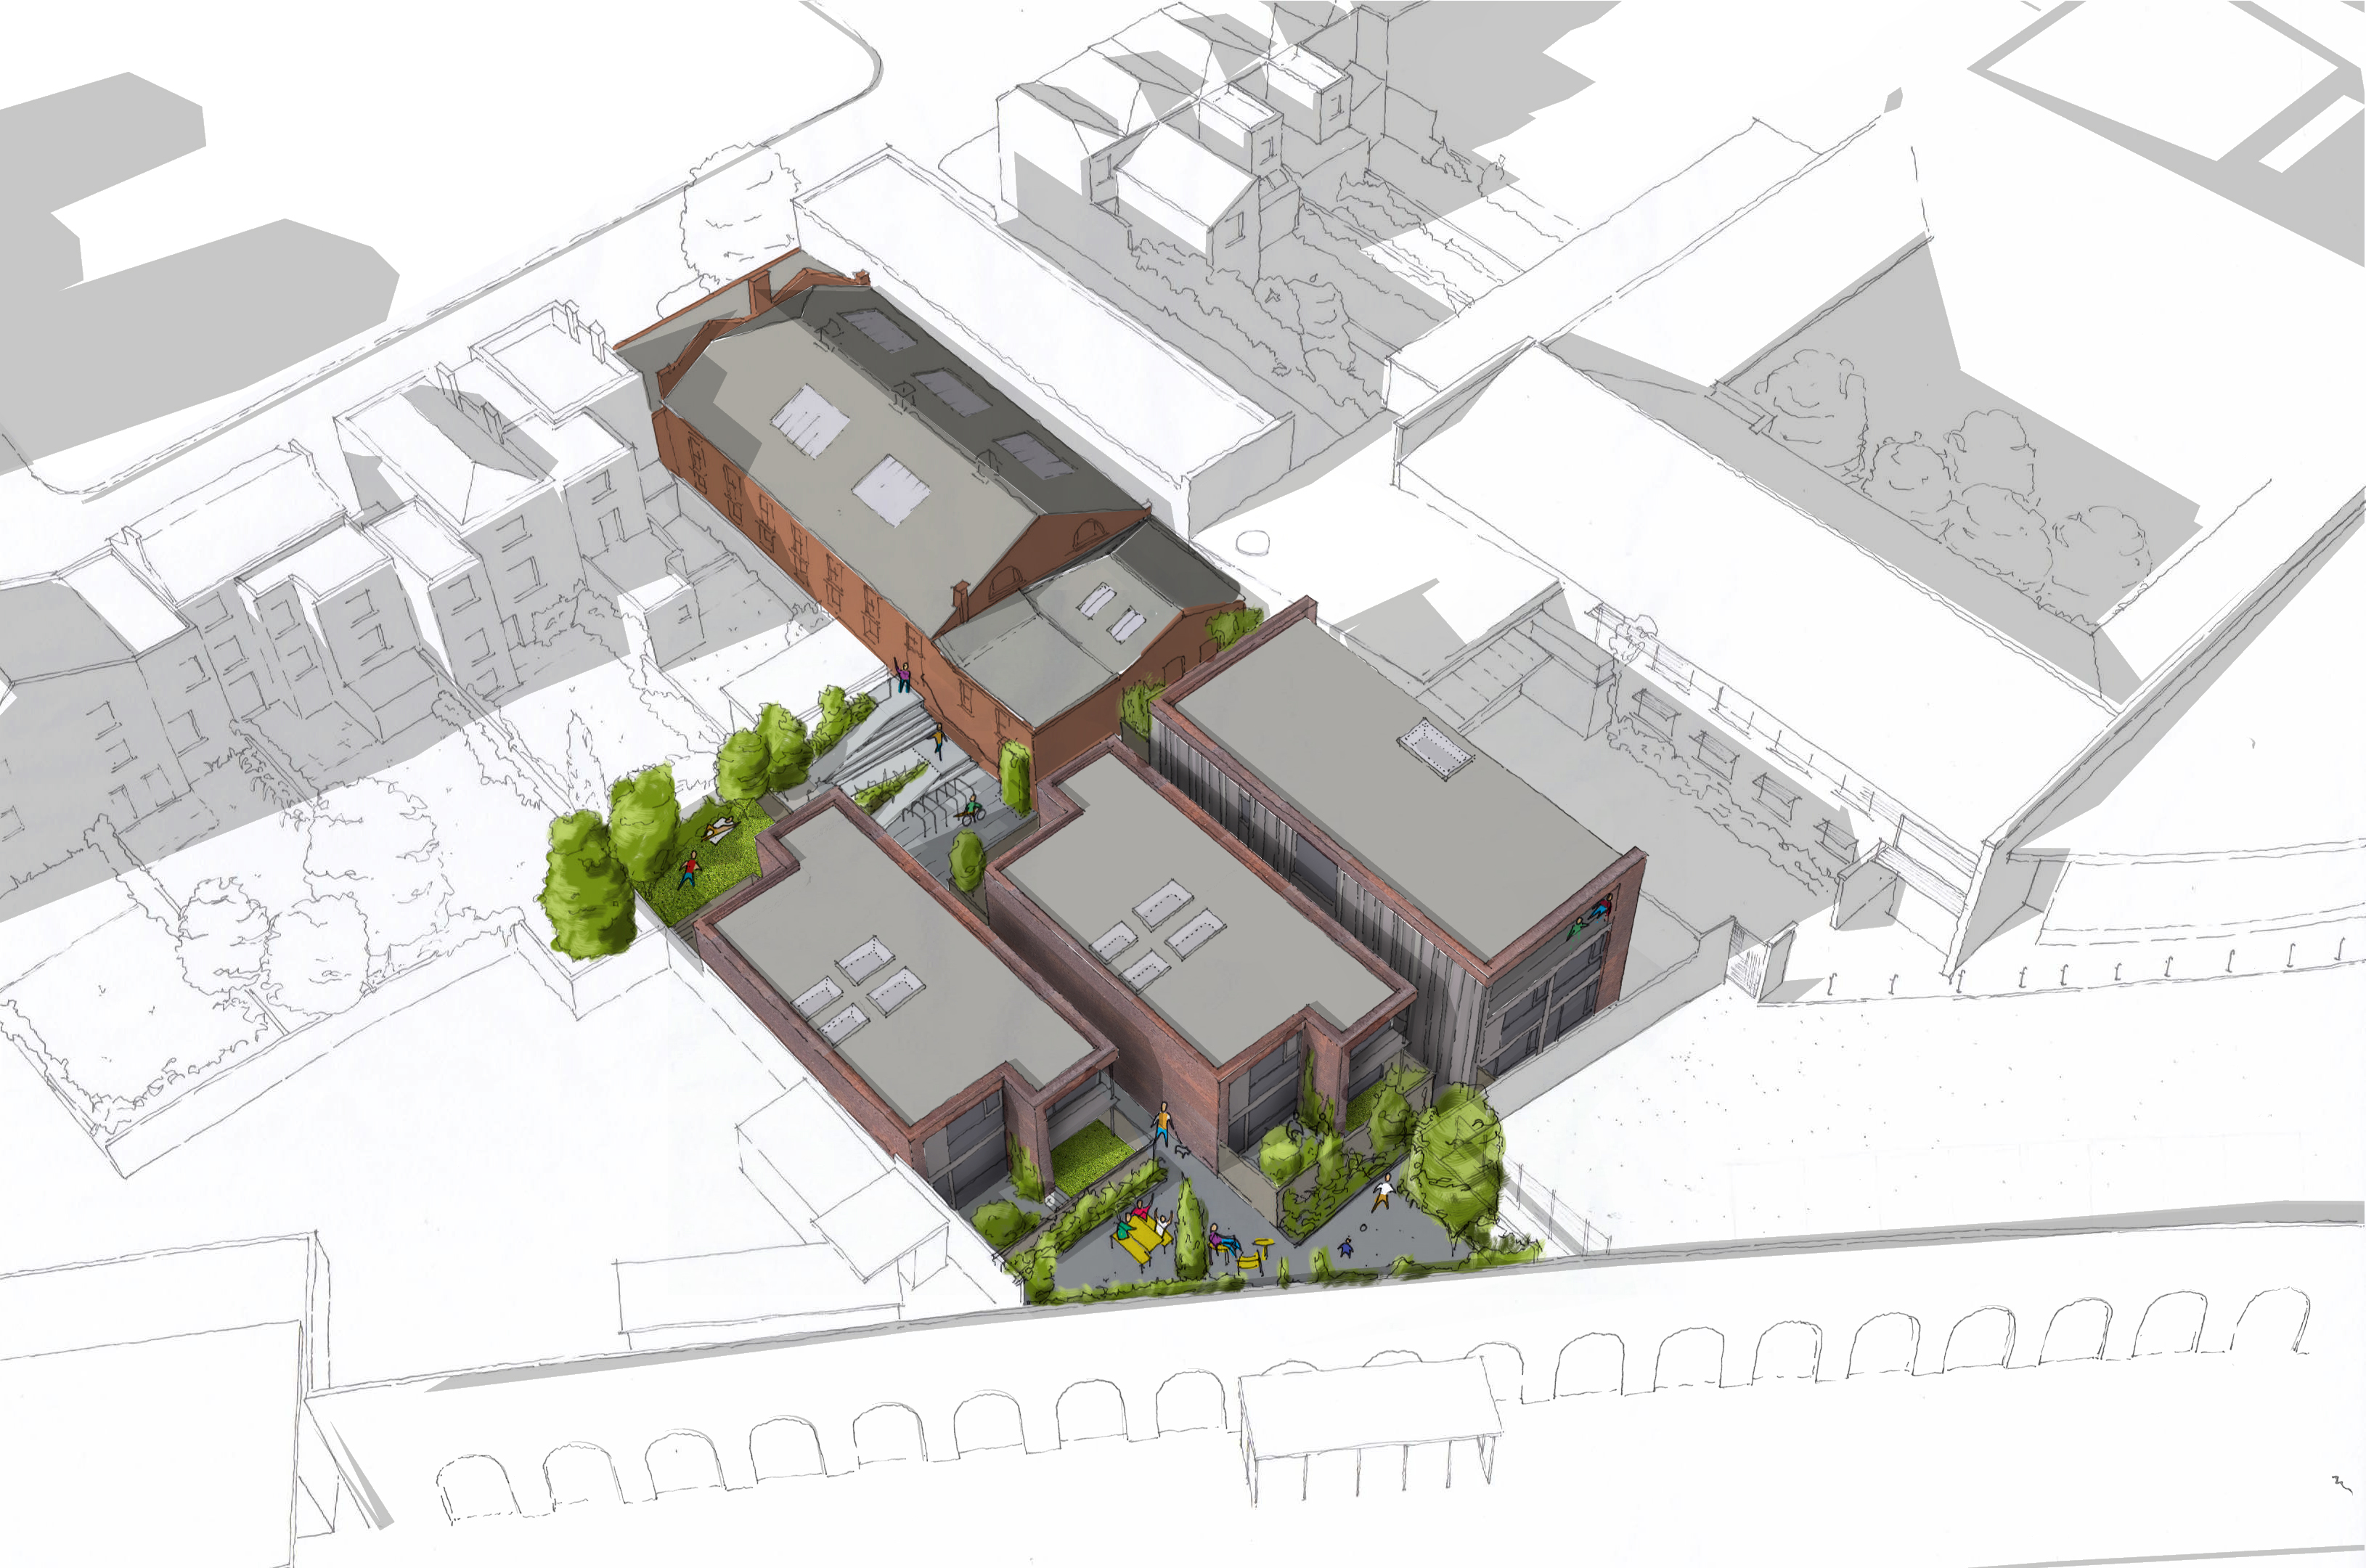 Sketch showing the aerial view of the development with the old sorting office and the new apartment buildings as proposed.